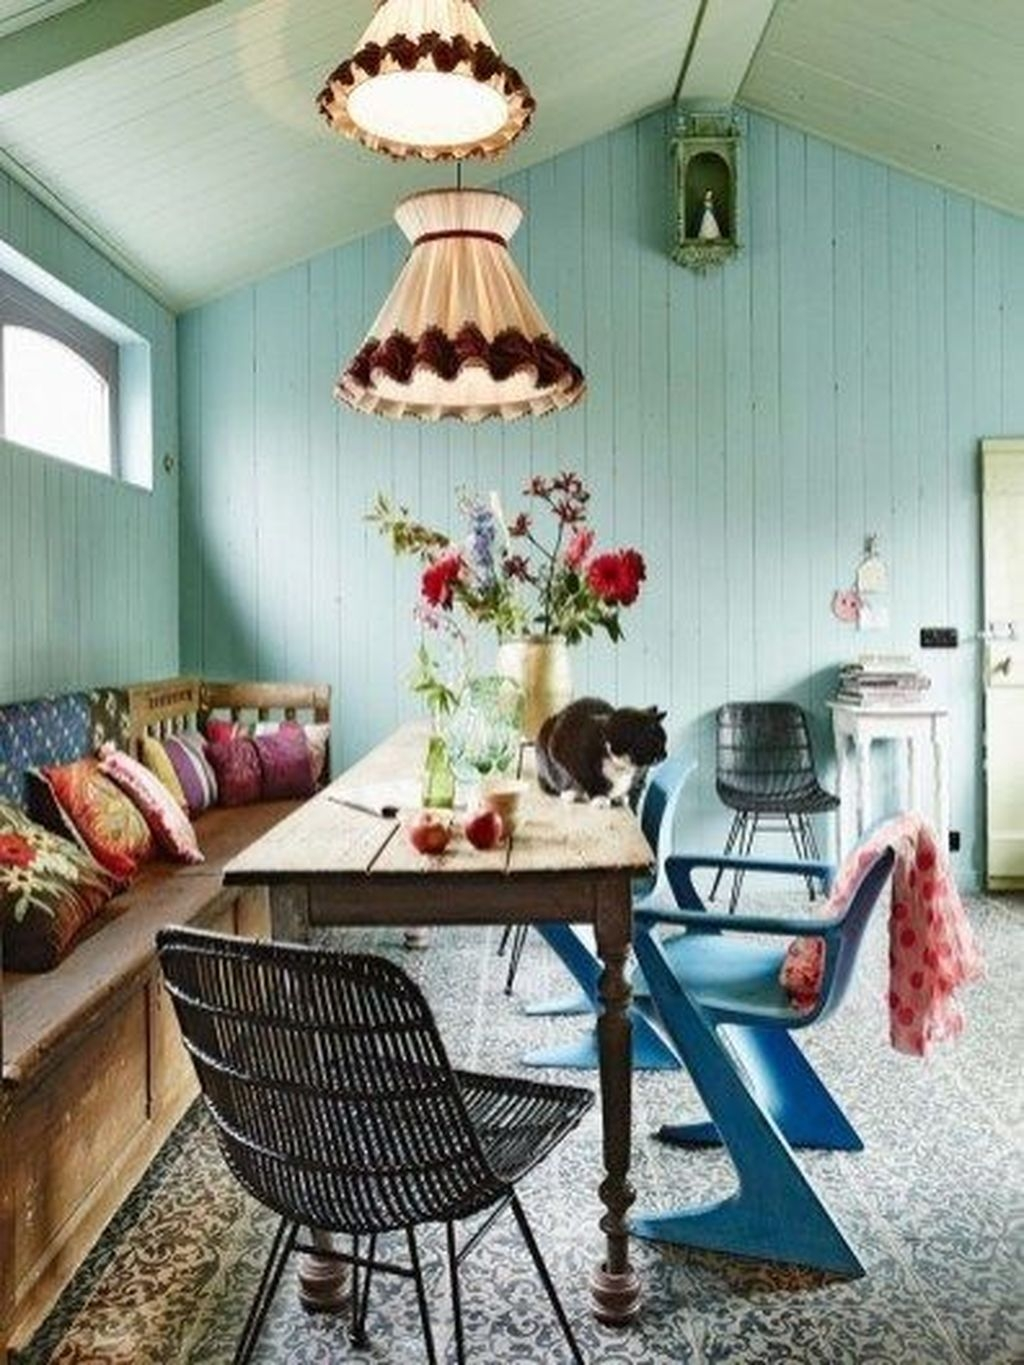 Unordinary Dining Room Design Ideas With Bohemian Style42